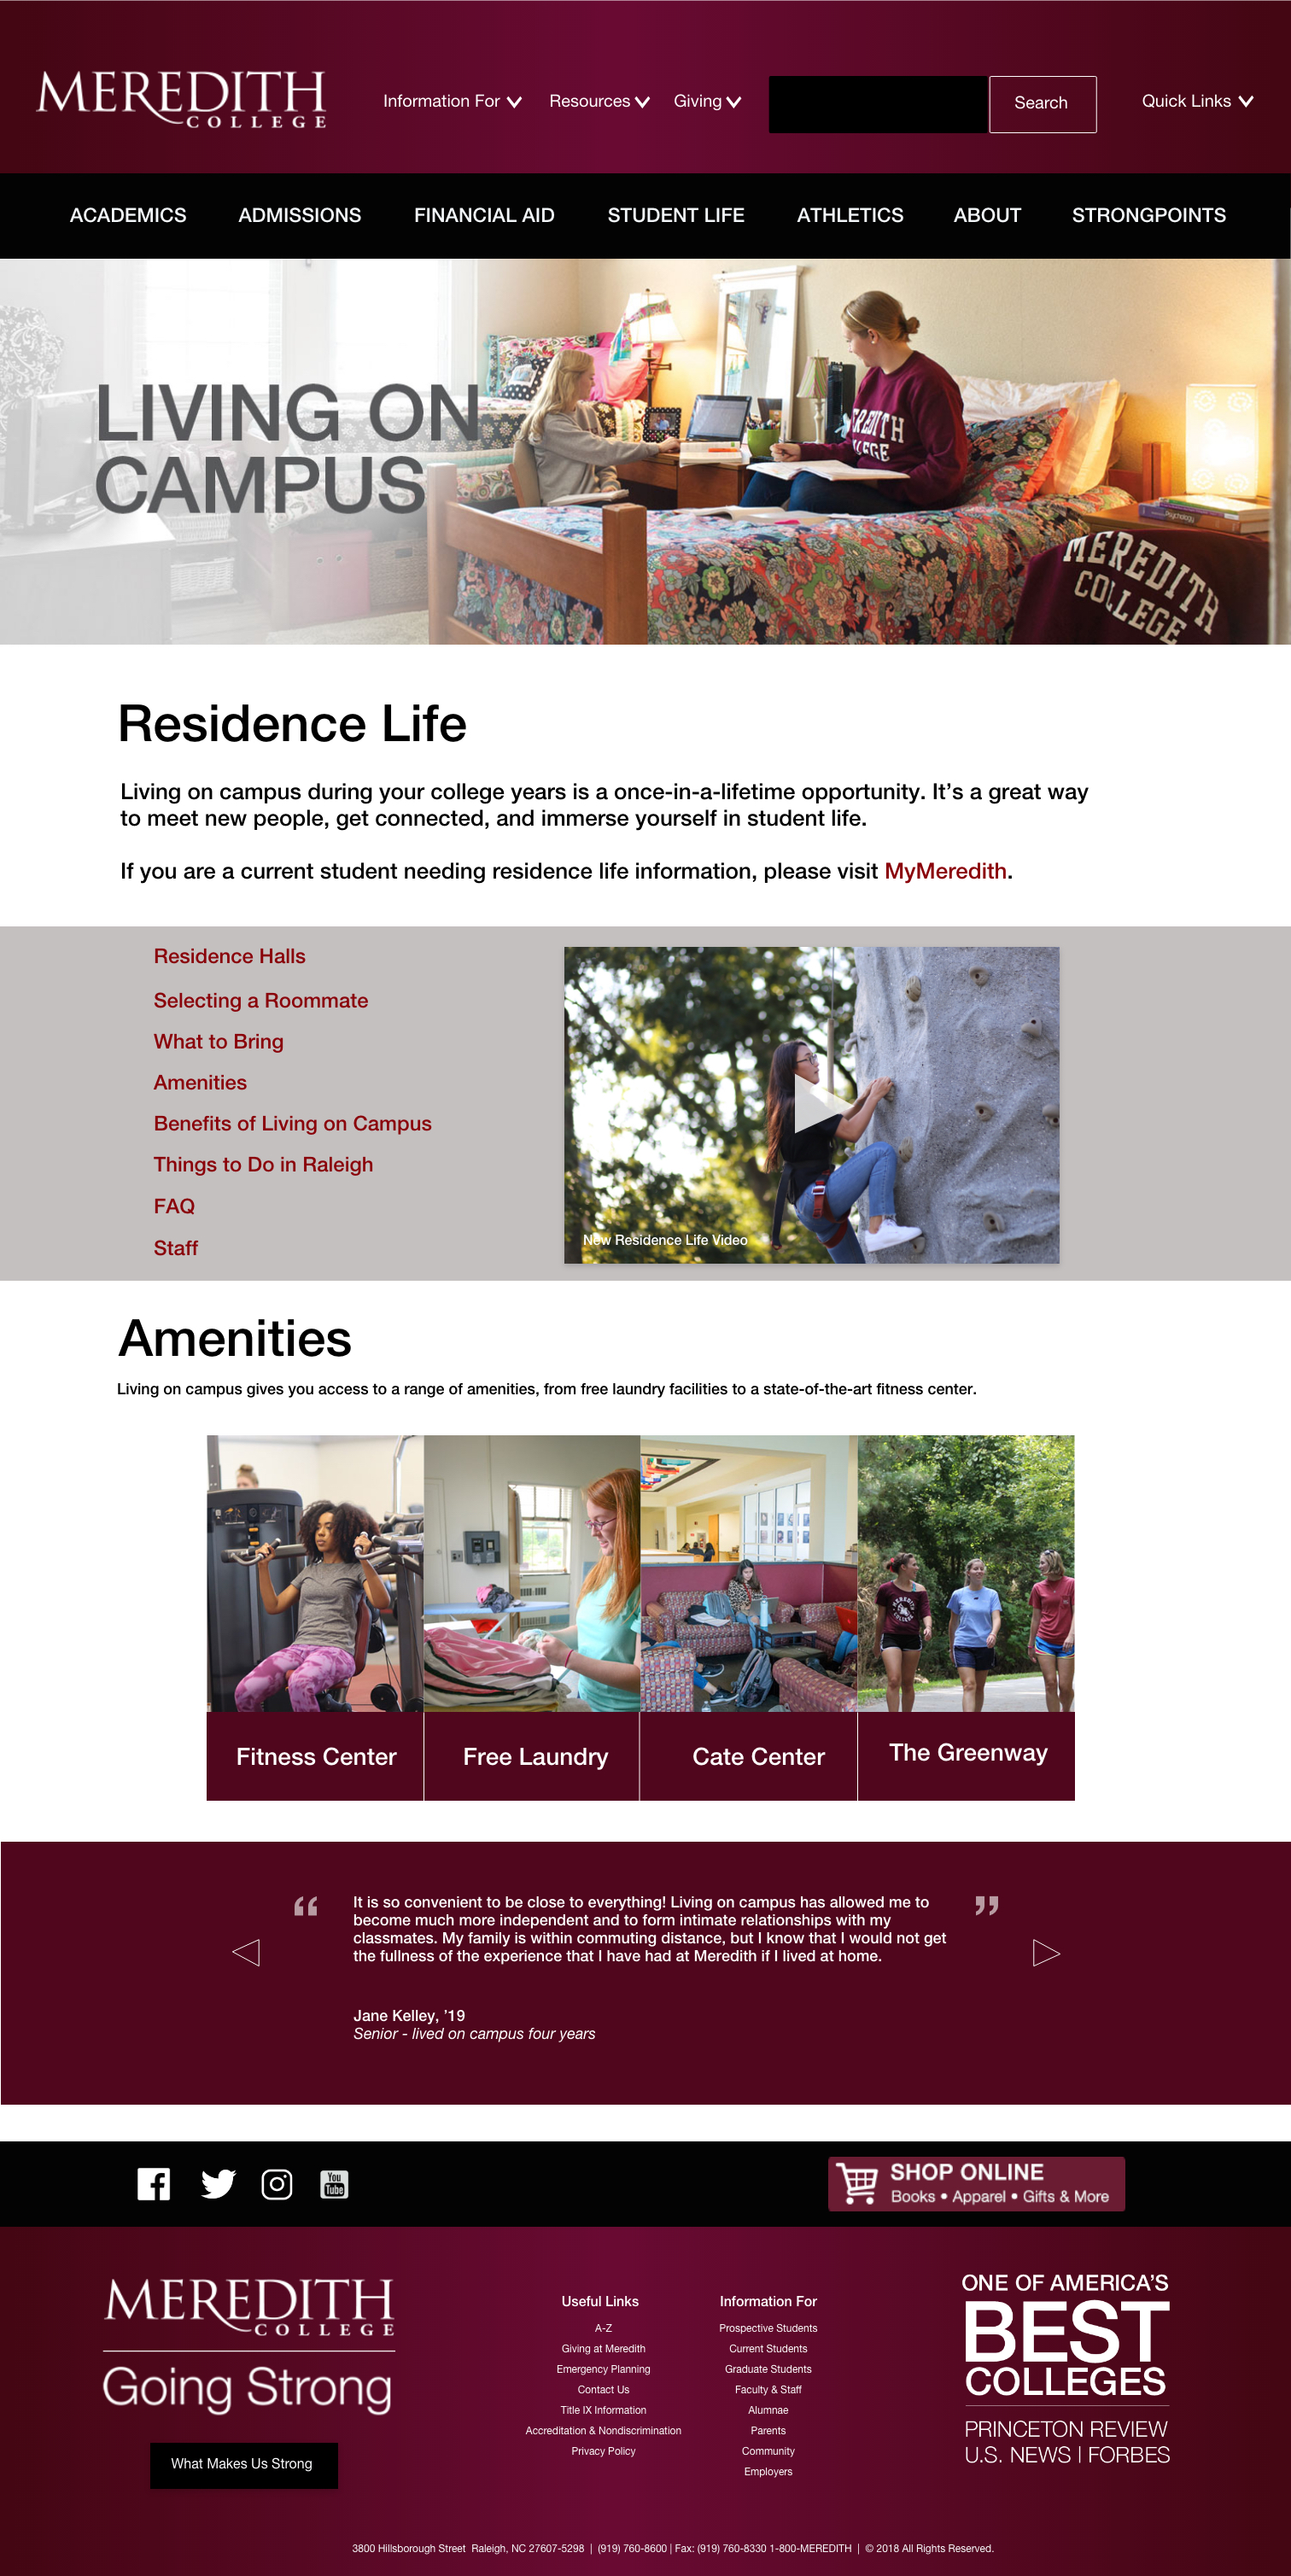 The Residence Life landing page after the redesign